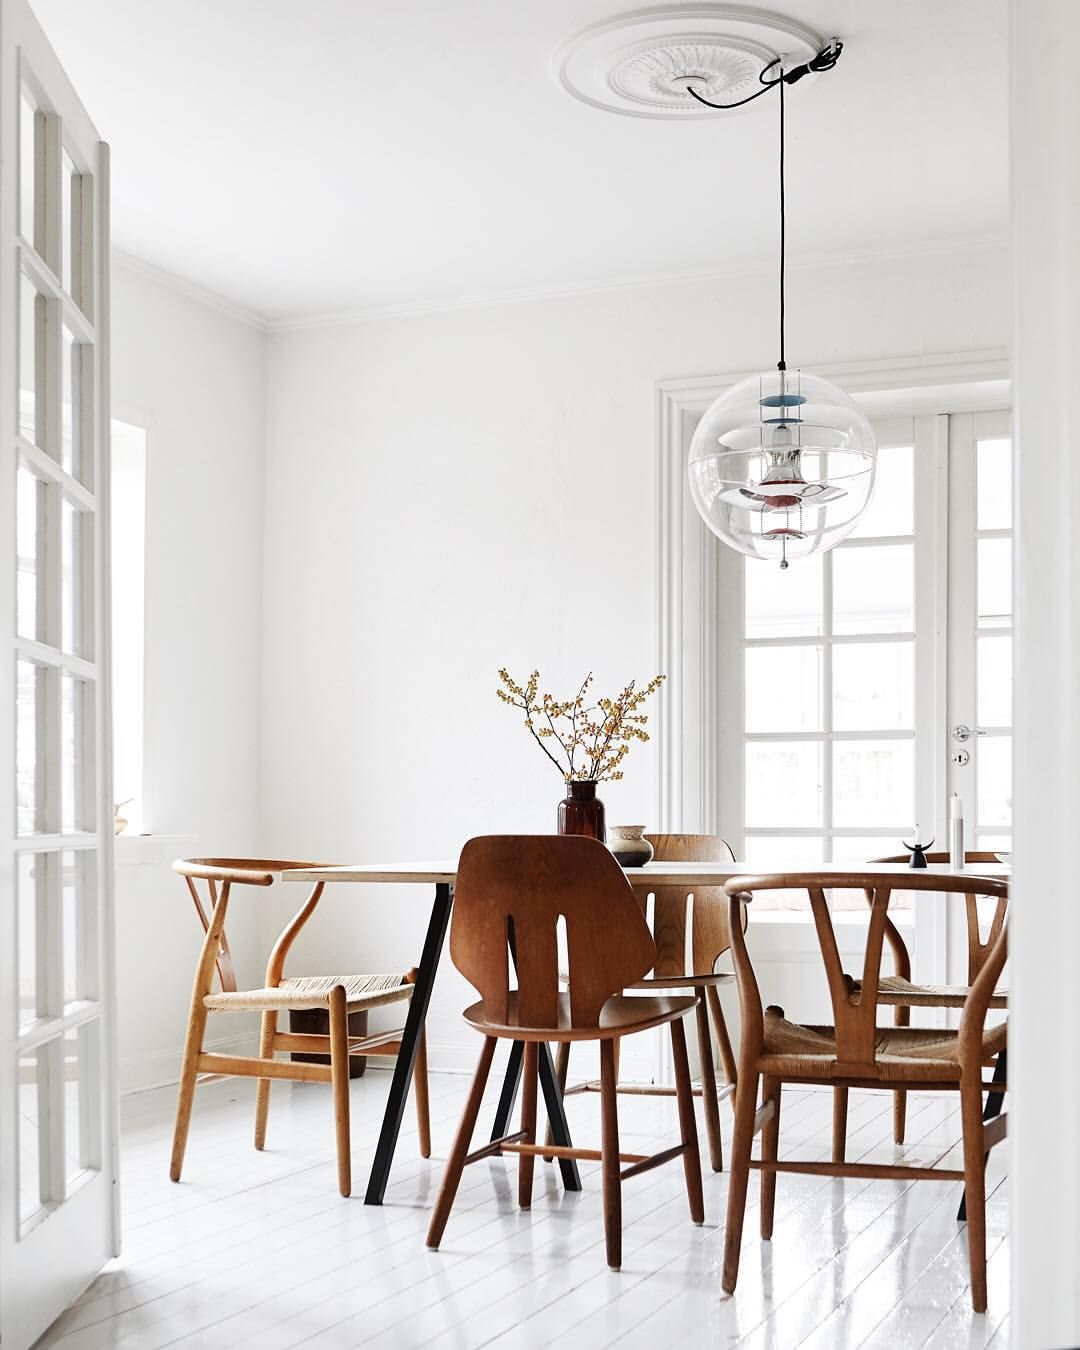 Painted White Floors Contrast The Natural Wood In This Stunning Dining Room Interiordes White Painted Floors Traditional Dining Rooms Dining Room Inspiration